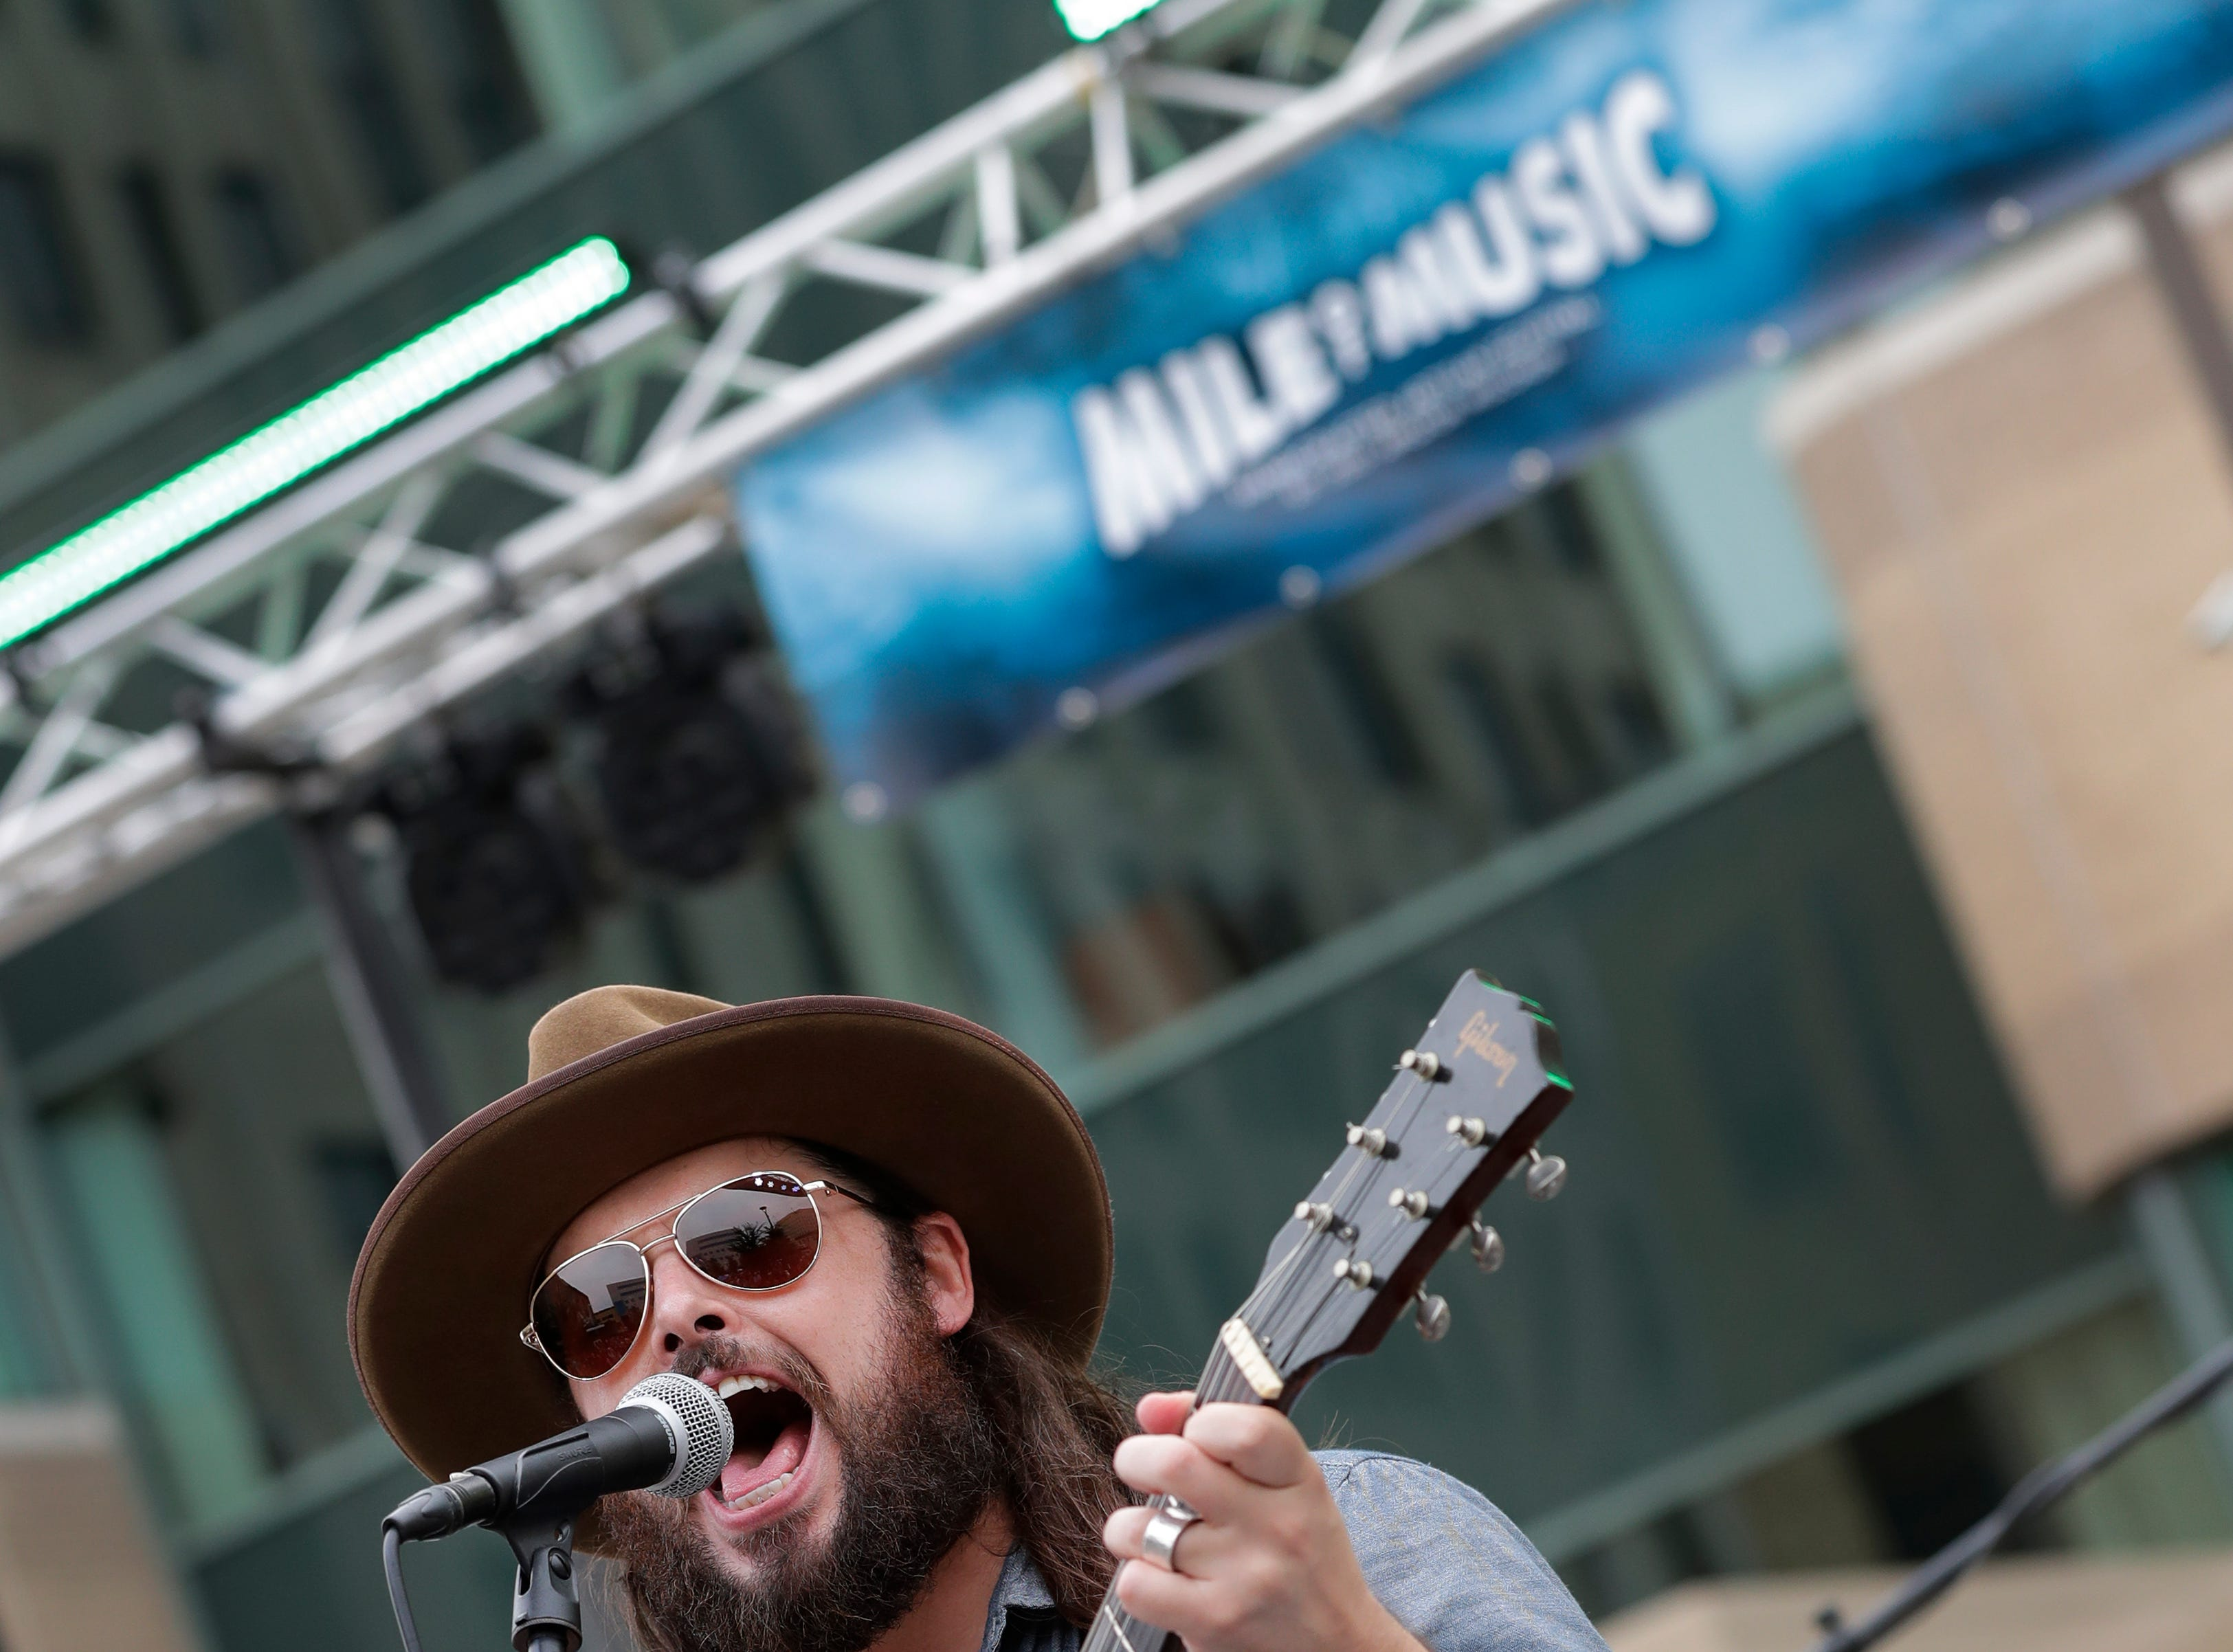 Caleb Caudle performs at the Houdini Plaza during the Mile of Music Friday, August 3, 2018, in Appleton, Wis.  